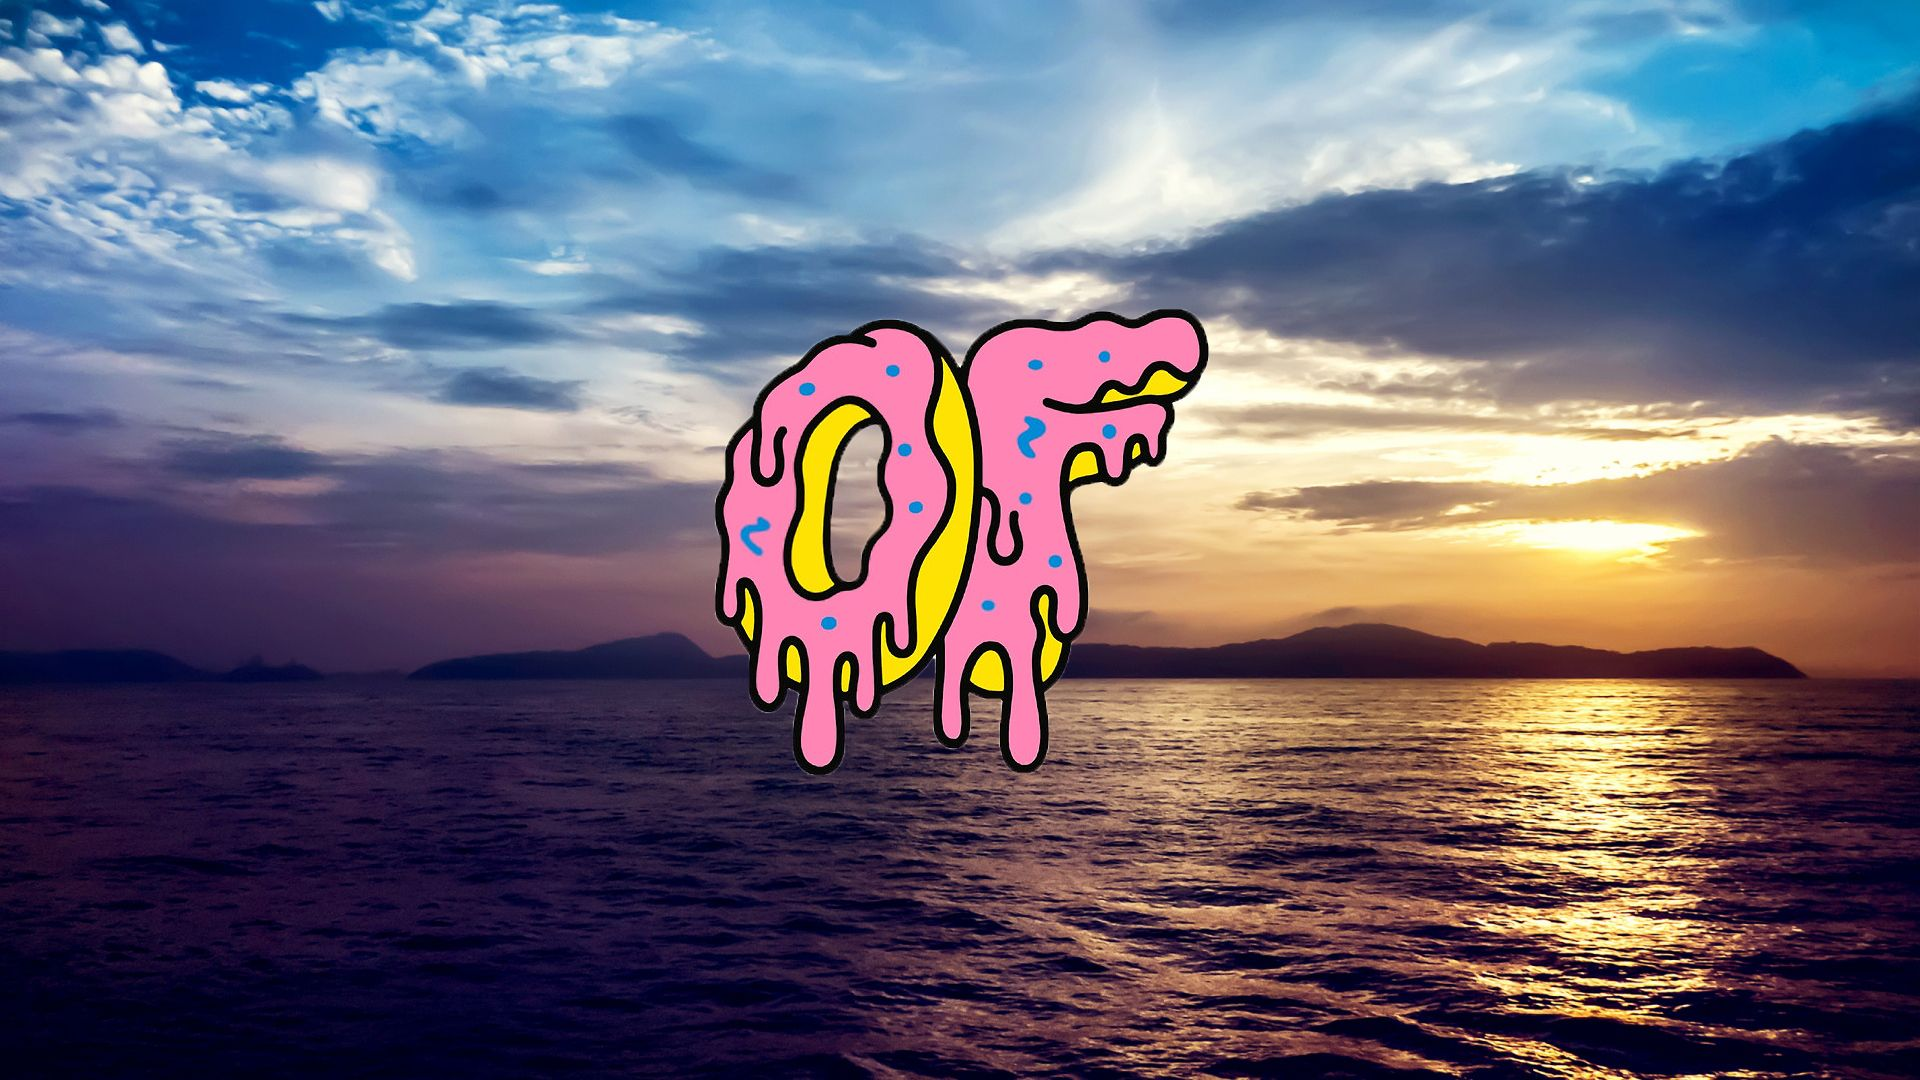 This Is A 1920x1080 Odd Future Background For Your Desktop I Just Made It I Think Its Pretty Cool Just Tell Me If You Want More Planos De Fundo Fundos